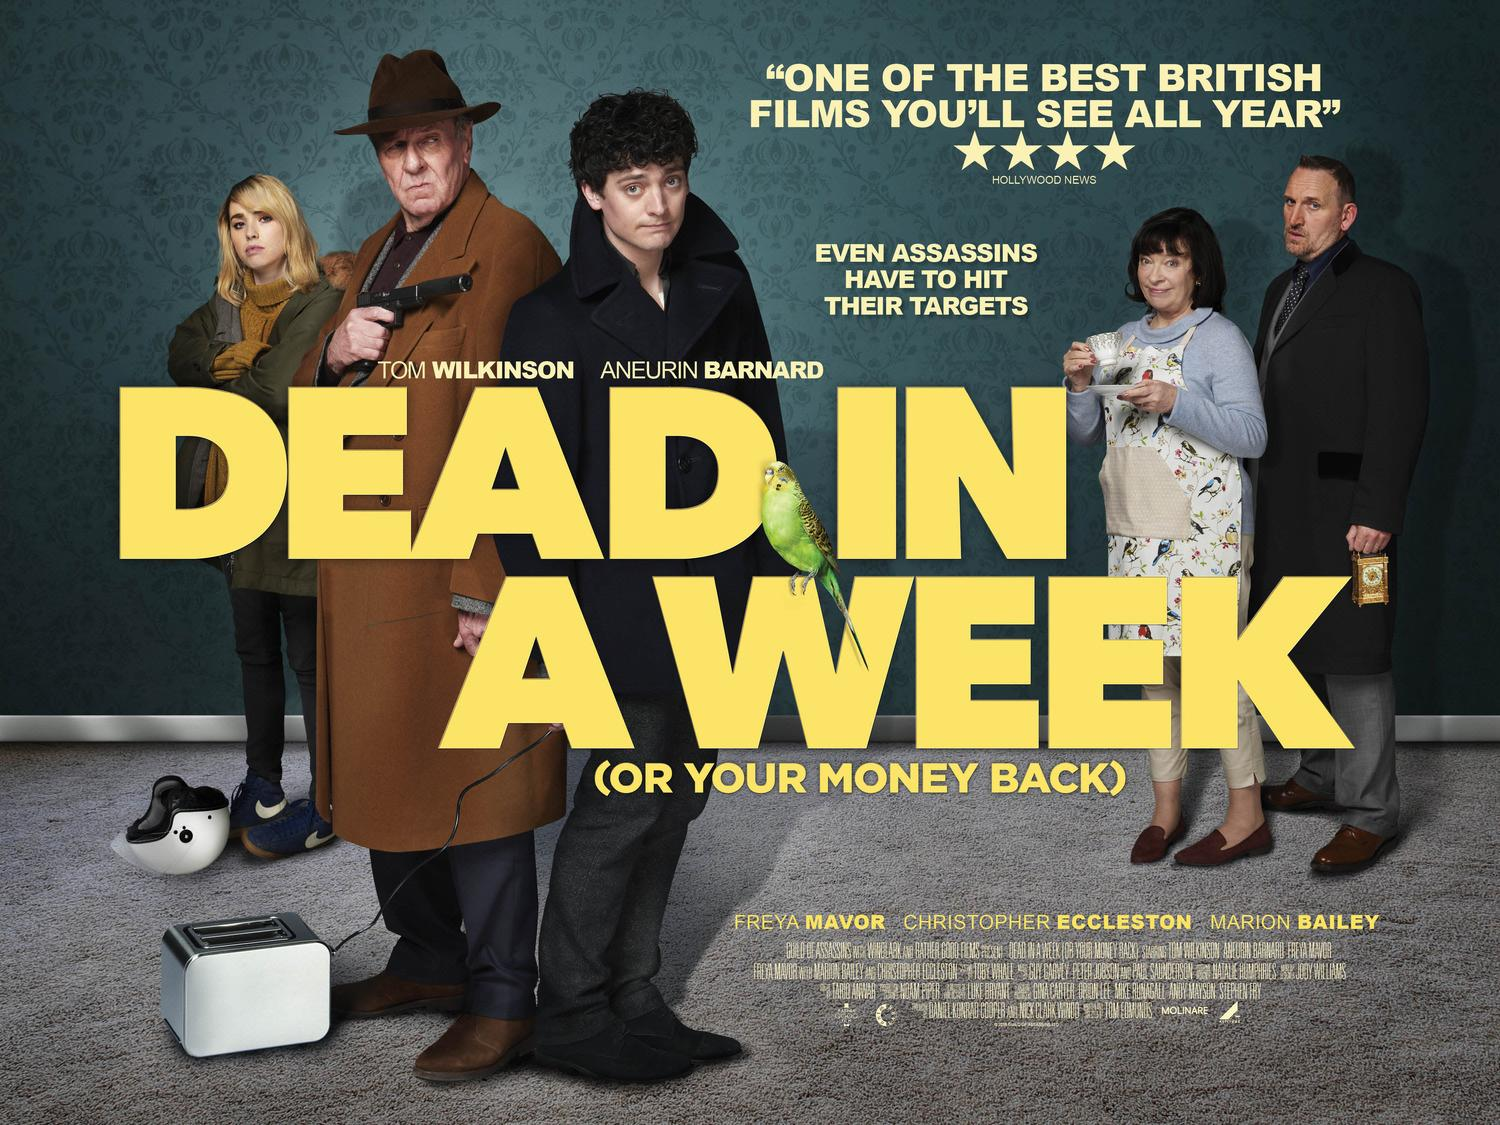 Dead in a Week: Or Your Money Back (film)